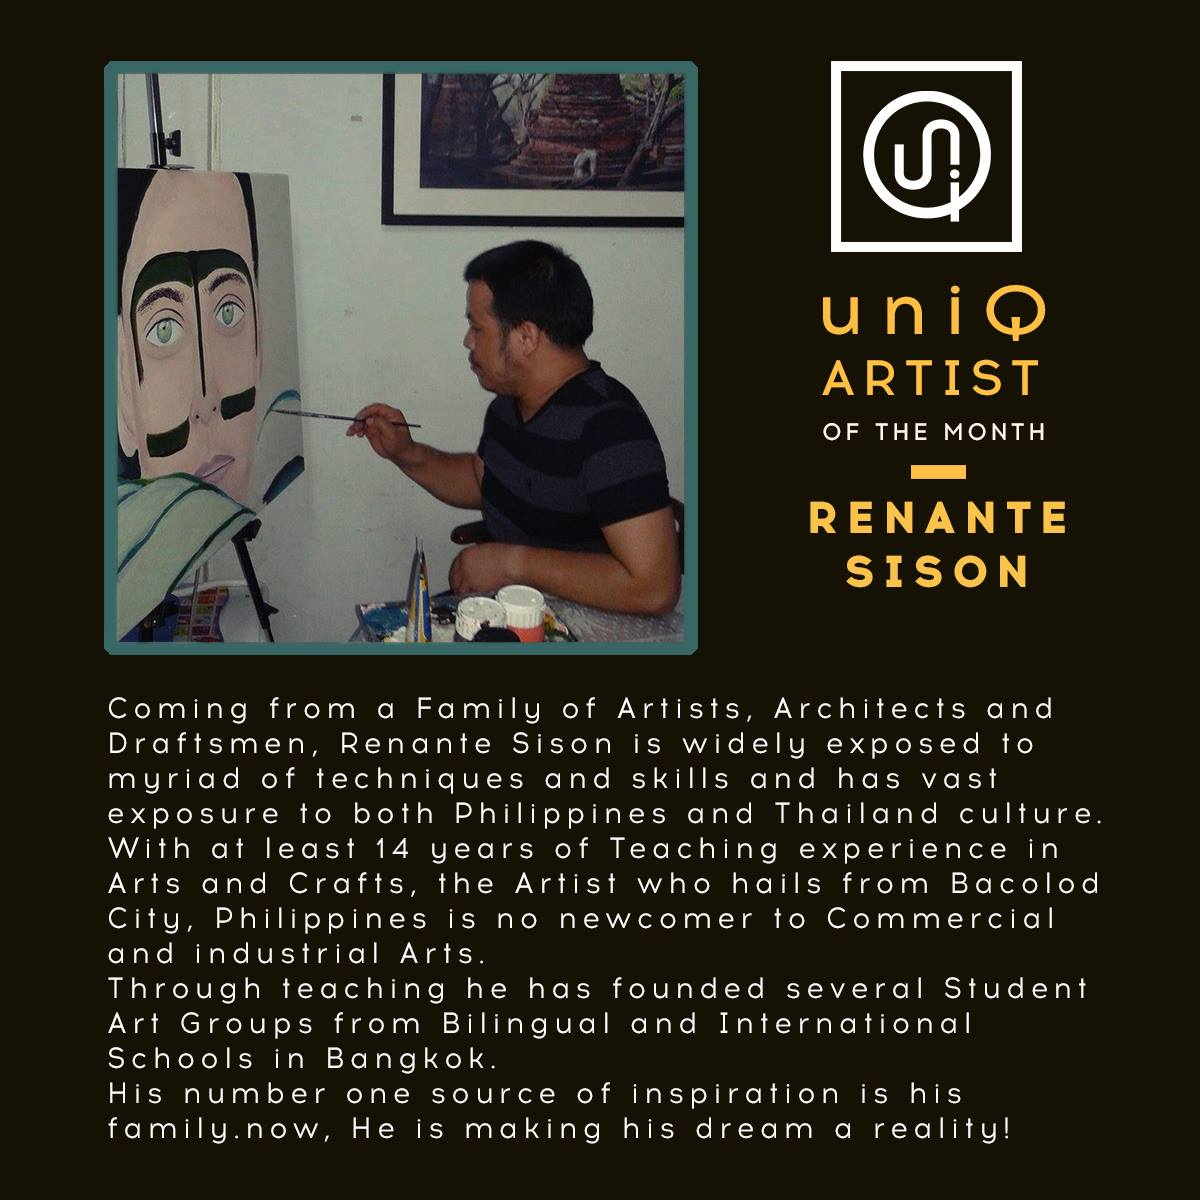 Renante Sison - Artist of the Month